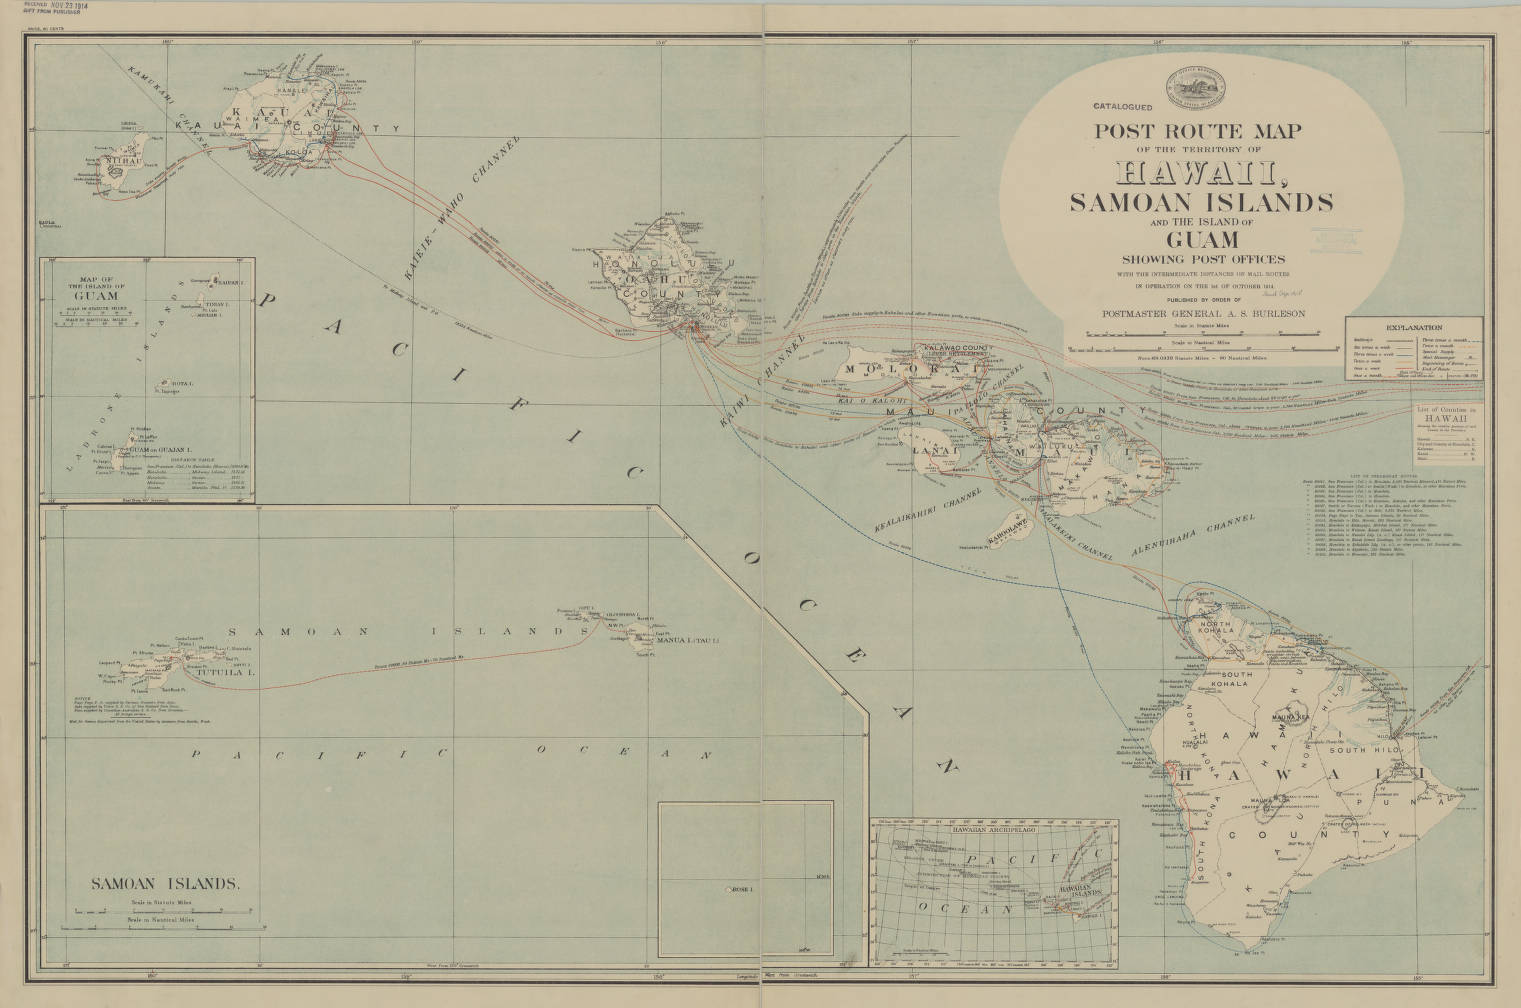 Guam And Hawaii Map.Hawaii Samoan Islands And The Island Of Guam 1914 Post Route Map